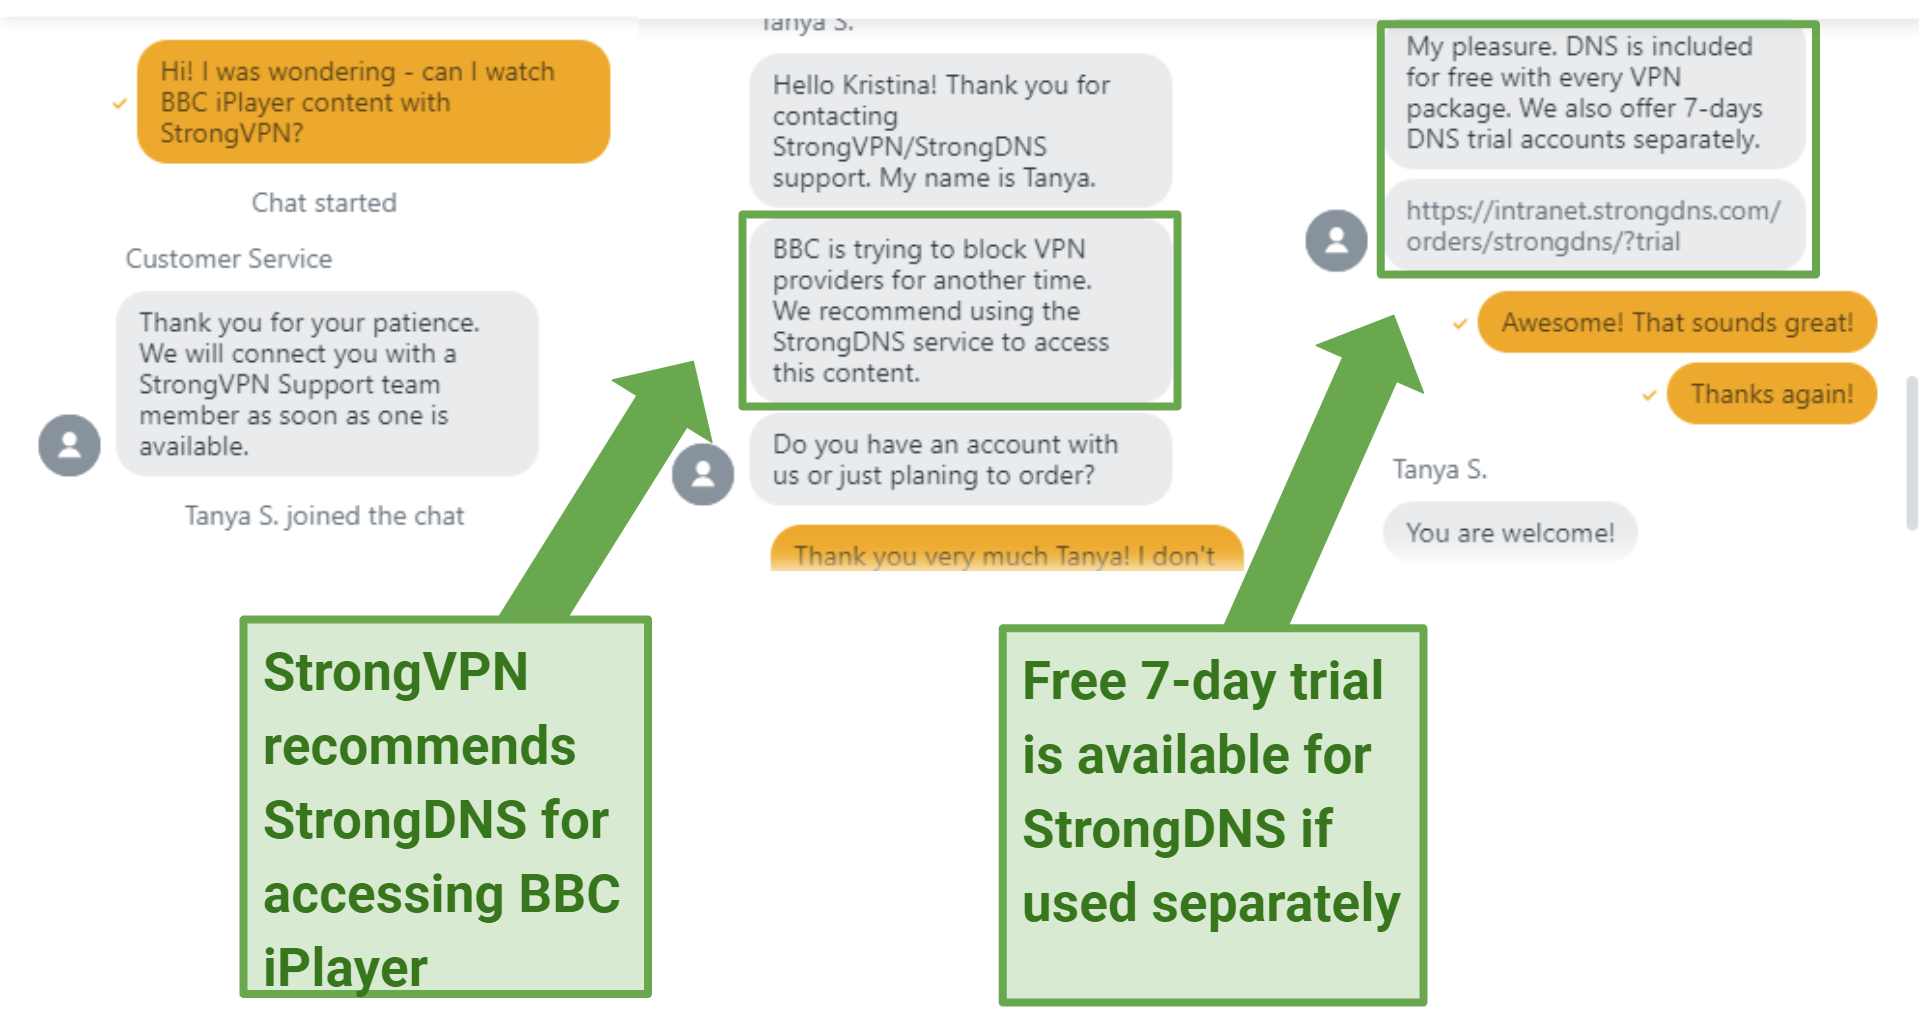 StrongVPN offers a very helpful and friendly live chat support